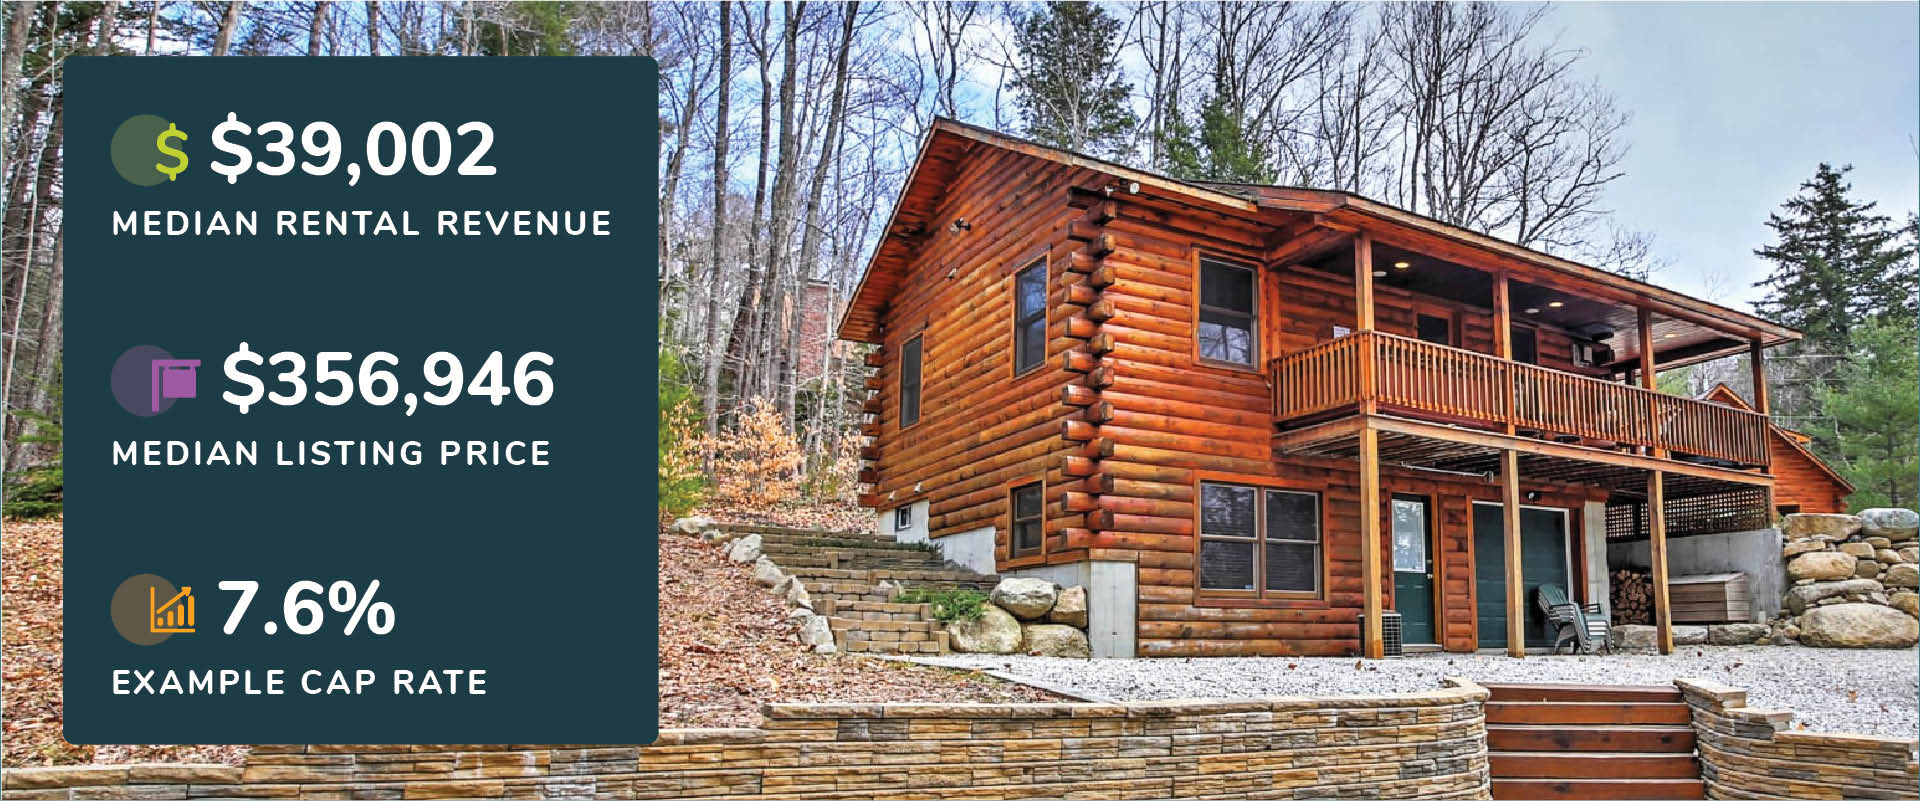 Graphic showing North Conway, New Hampshire median rental revenue, listing price, and cap rate with a picture of a log house with retaining wall and deck.